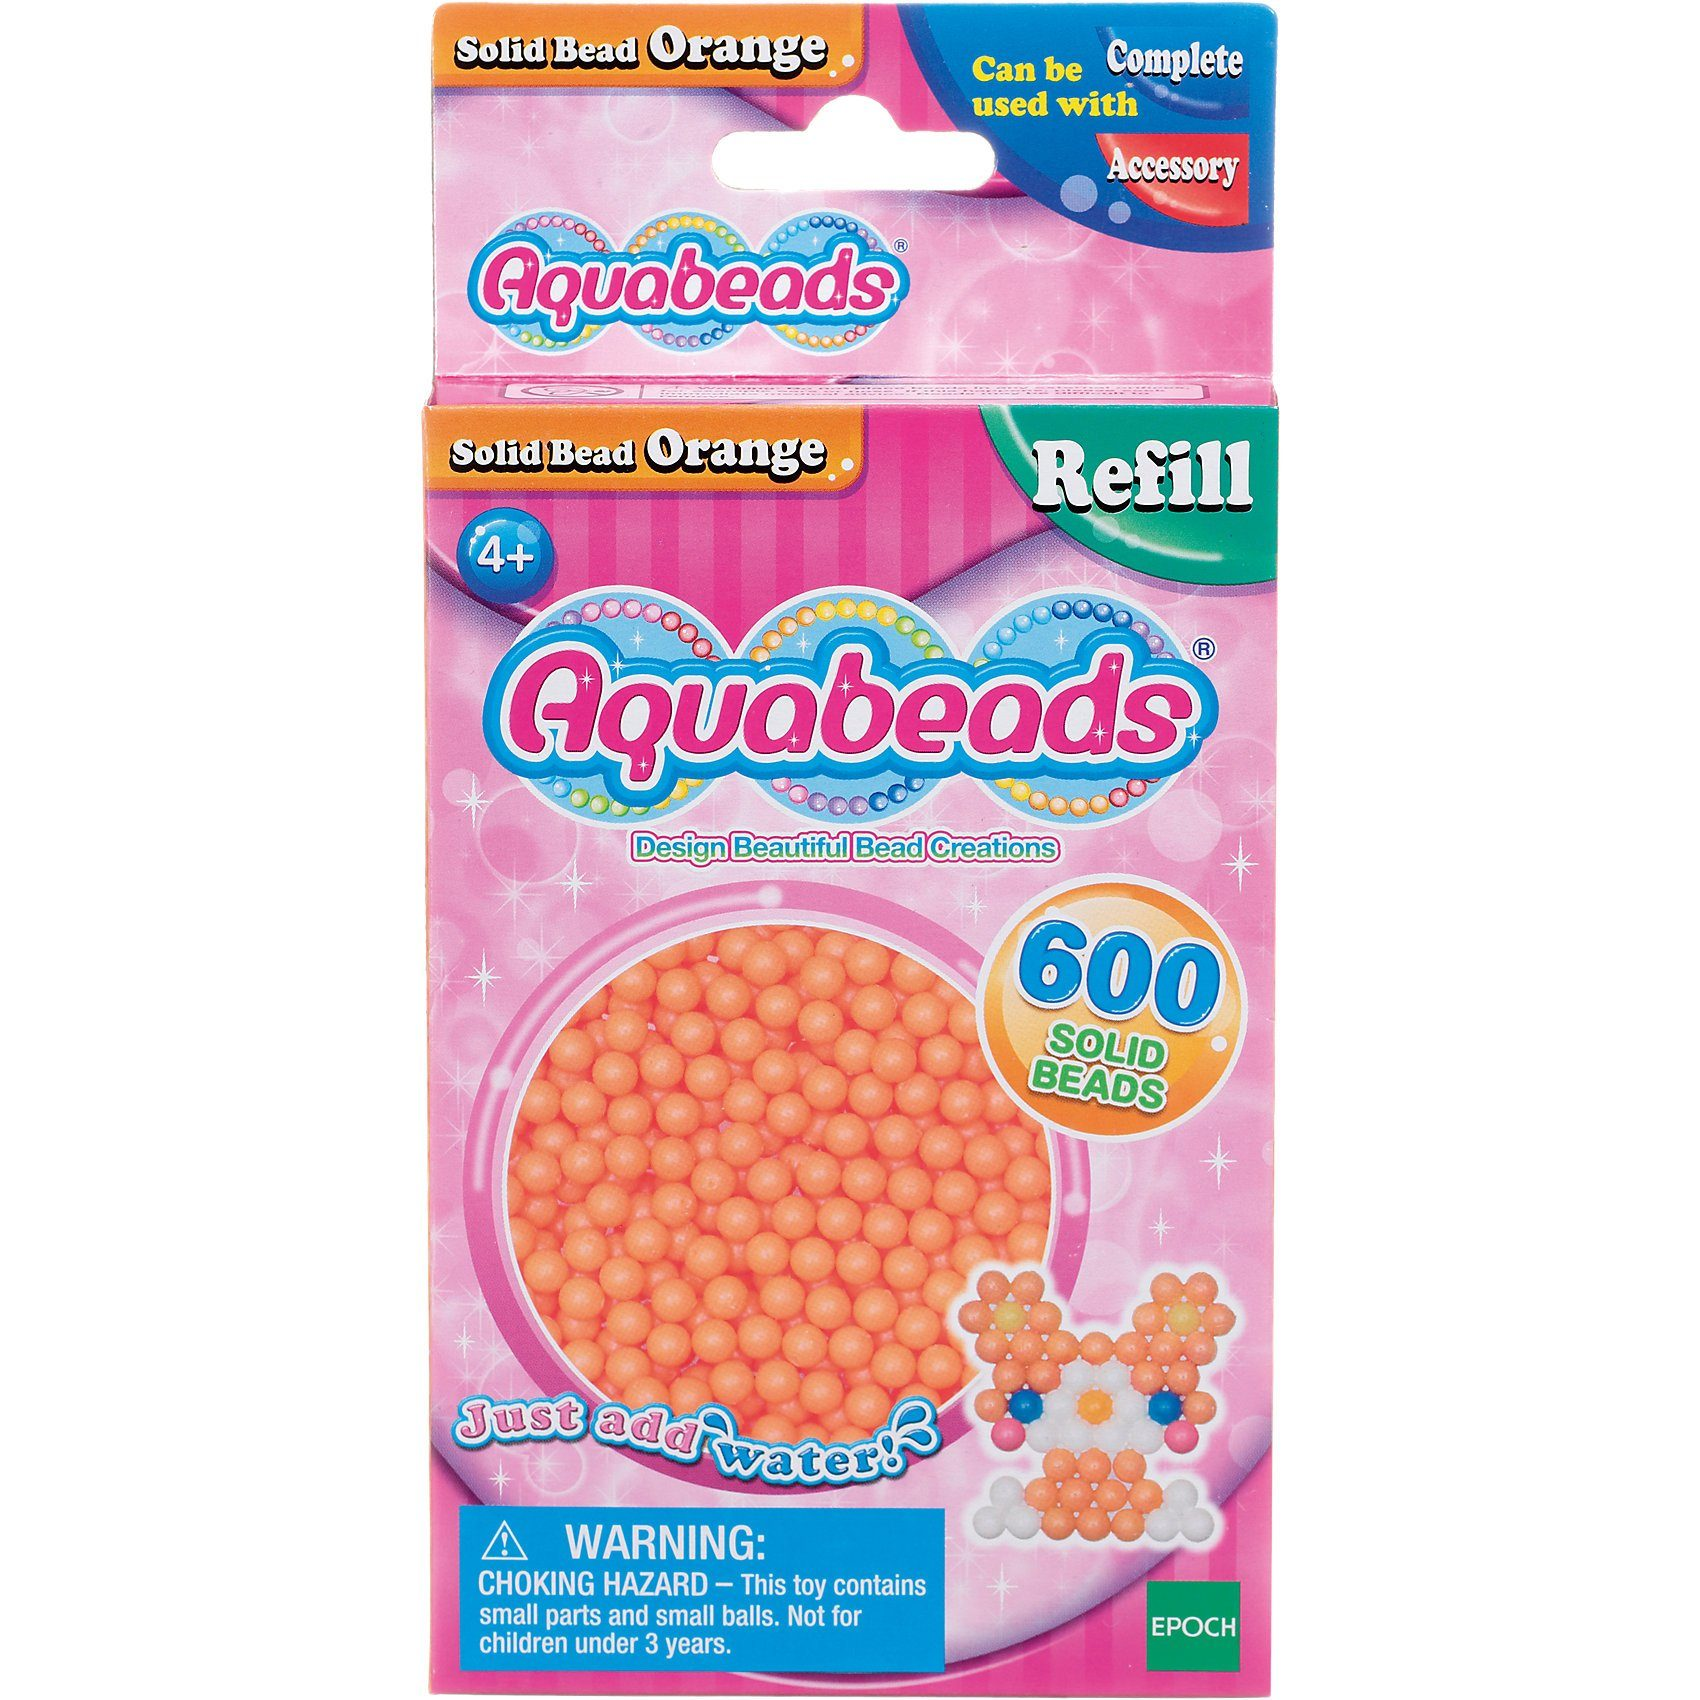 Epoch Traumwiesen Aquabeads Nachfüllpack Orange Perlen